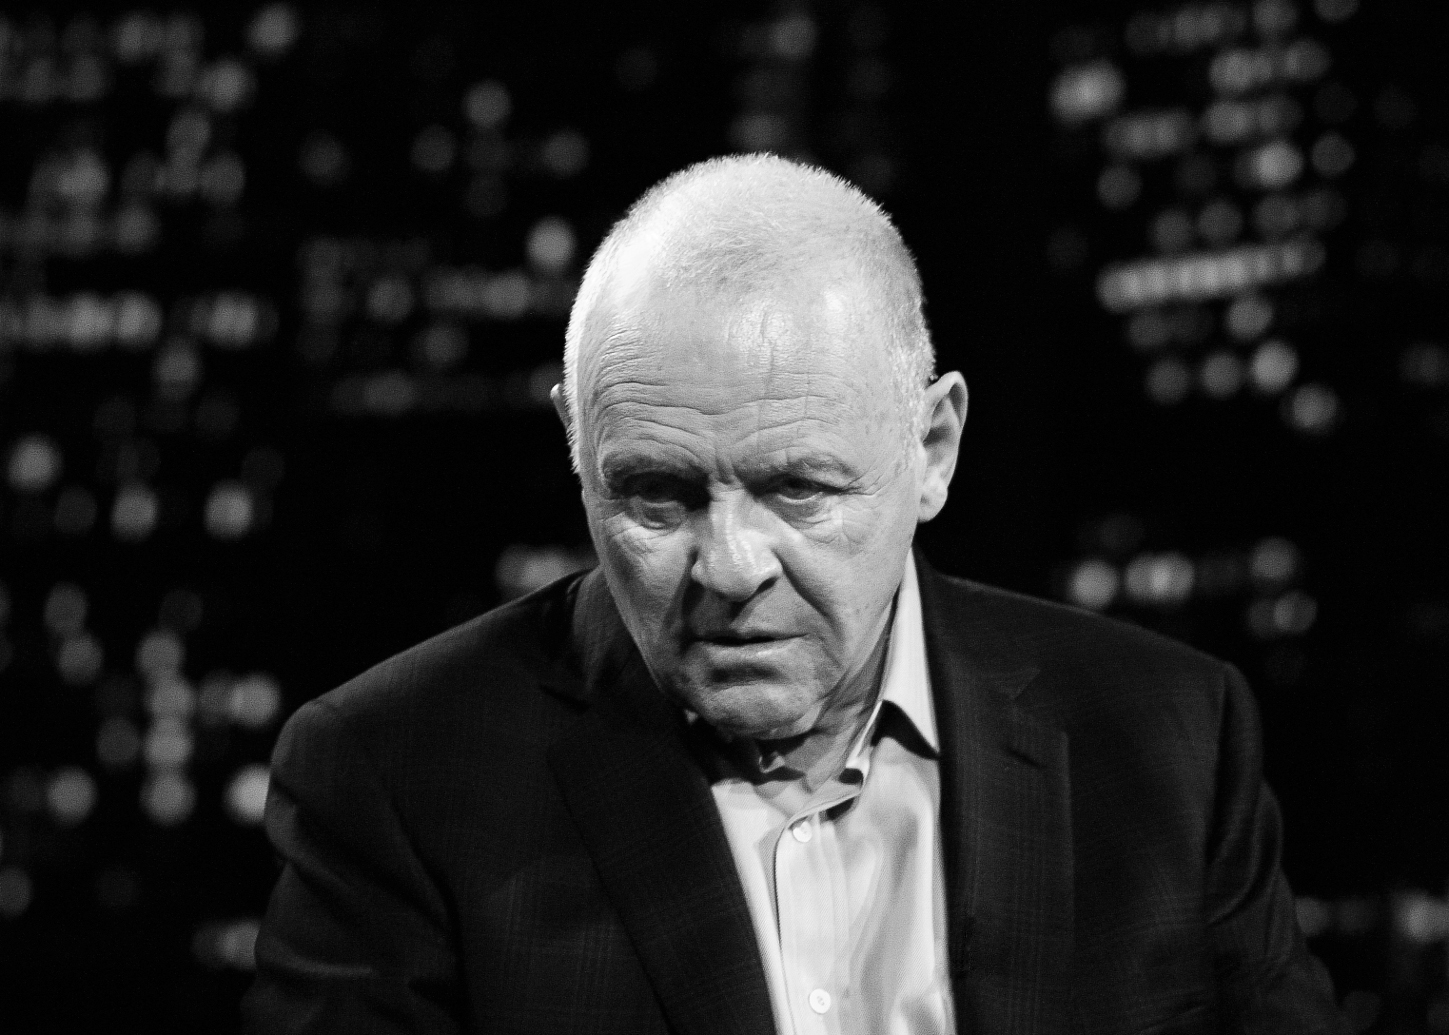 Anthony Hopkins / jvephoto.com